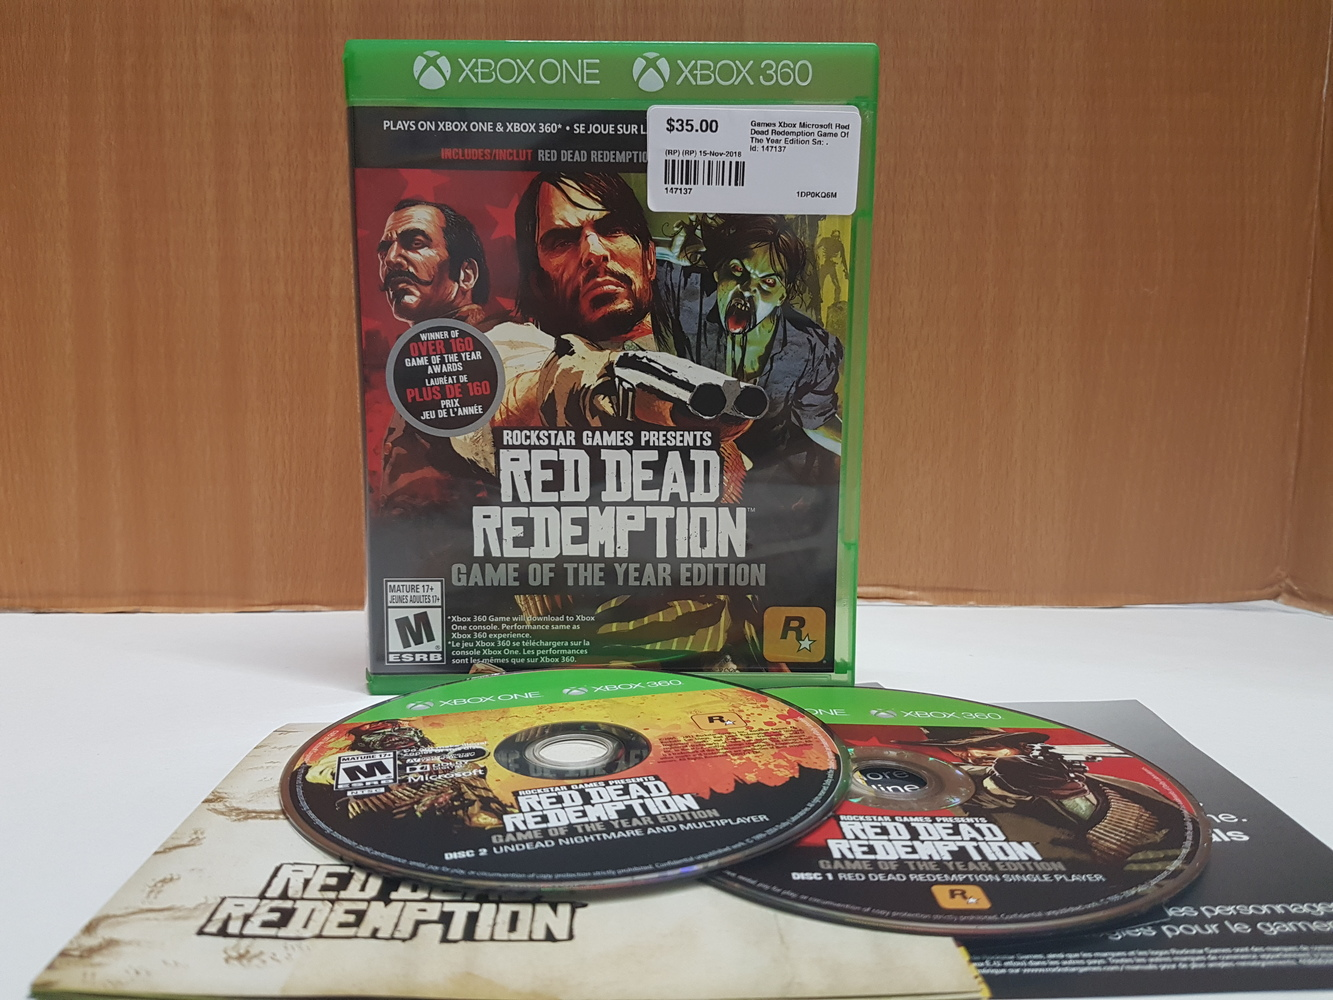 XBOX ONE Red Dead Redemption Game of the Year Edition | Avenue Shop